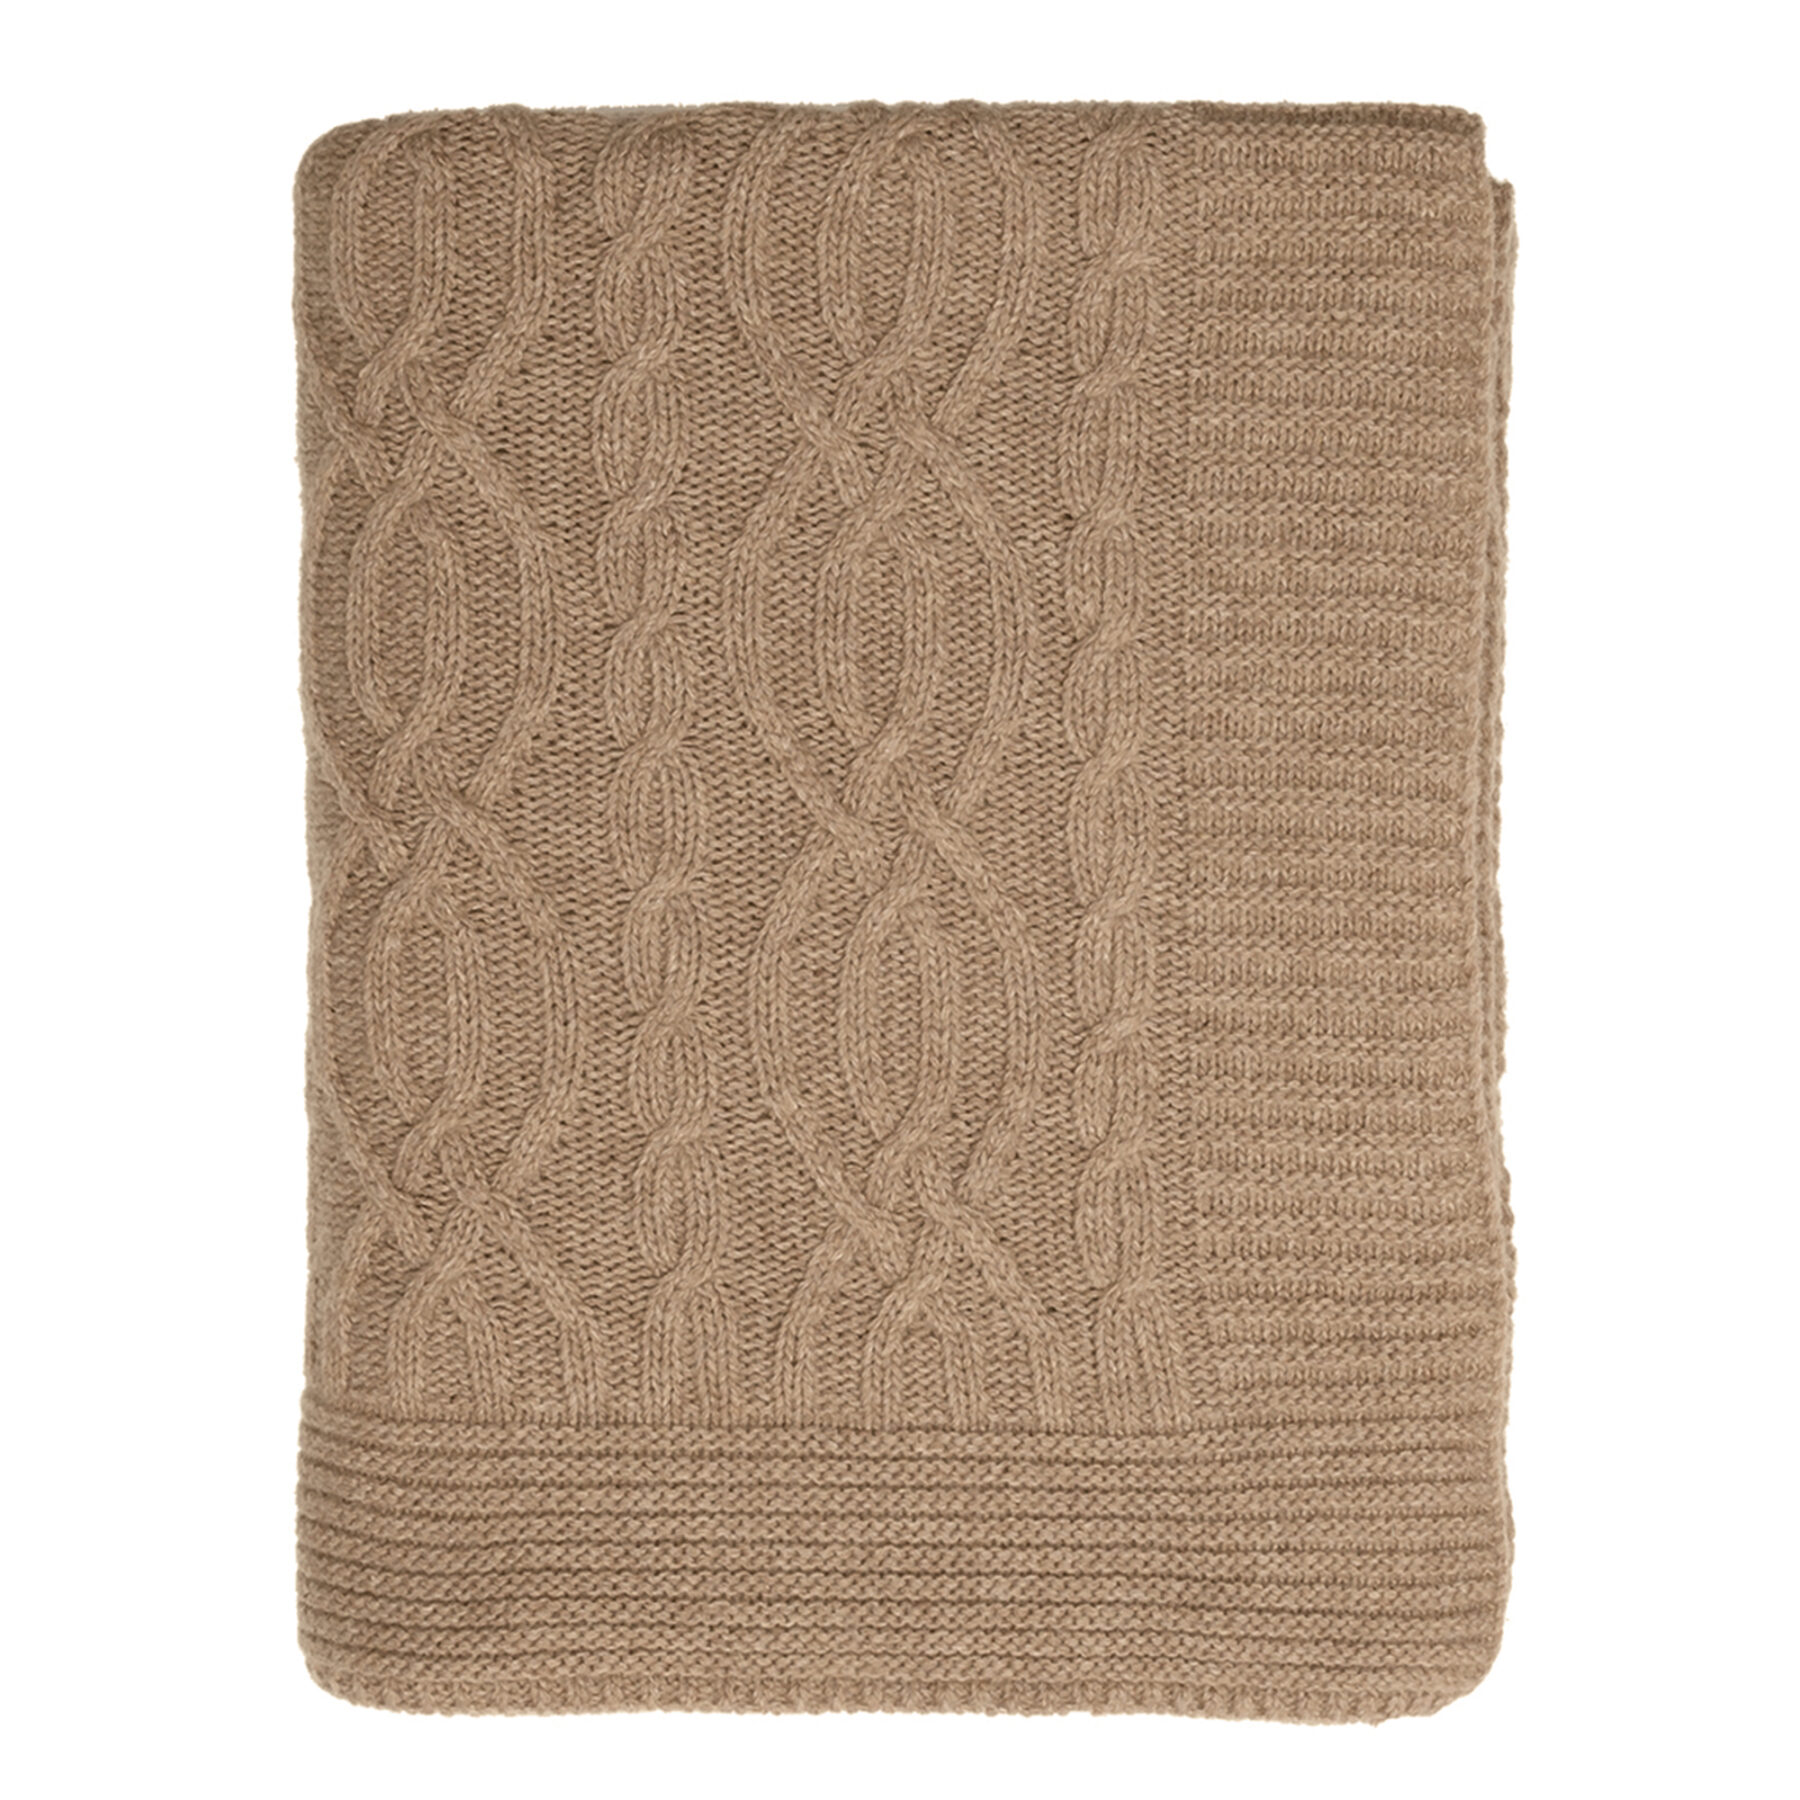 cable-knit-lambswool-throw-tan-square-0001